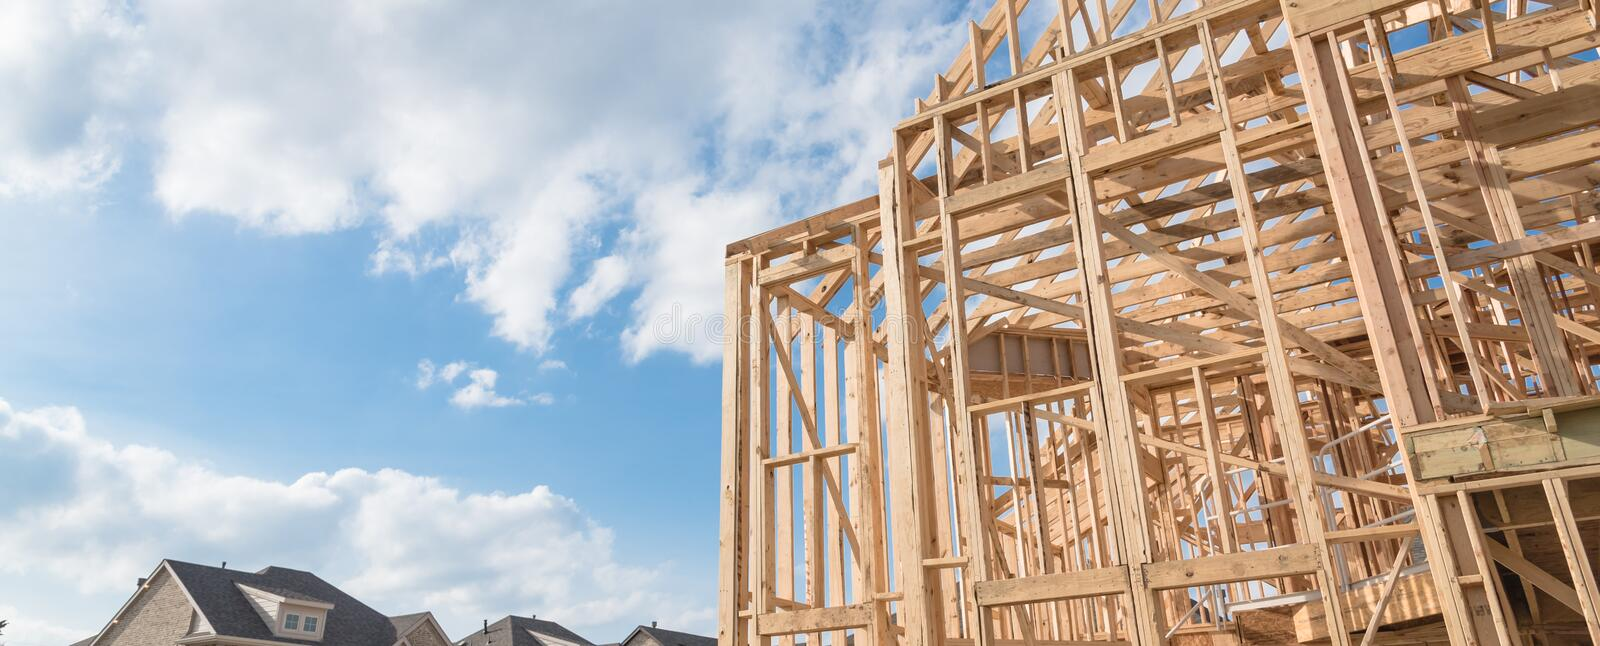 Close-up wooden timber frame house in Irving, Texas, USA royalty free stock photo